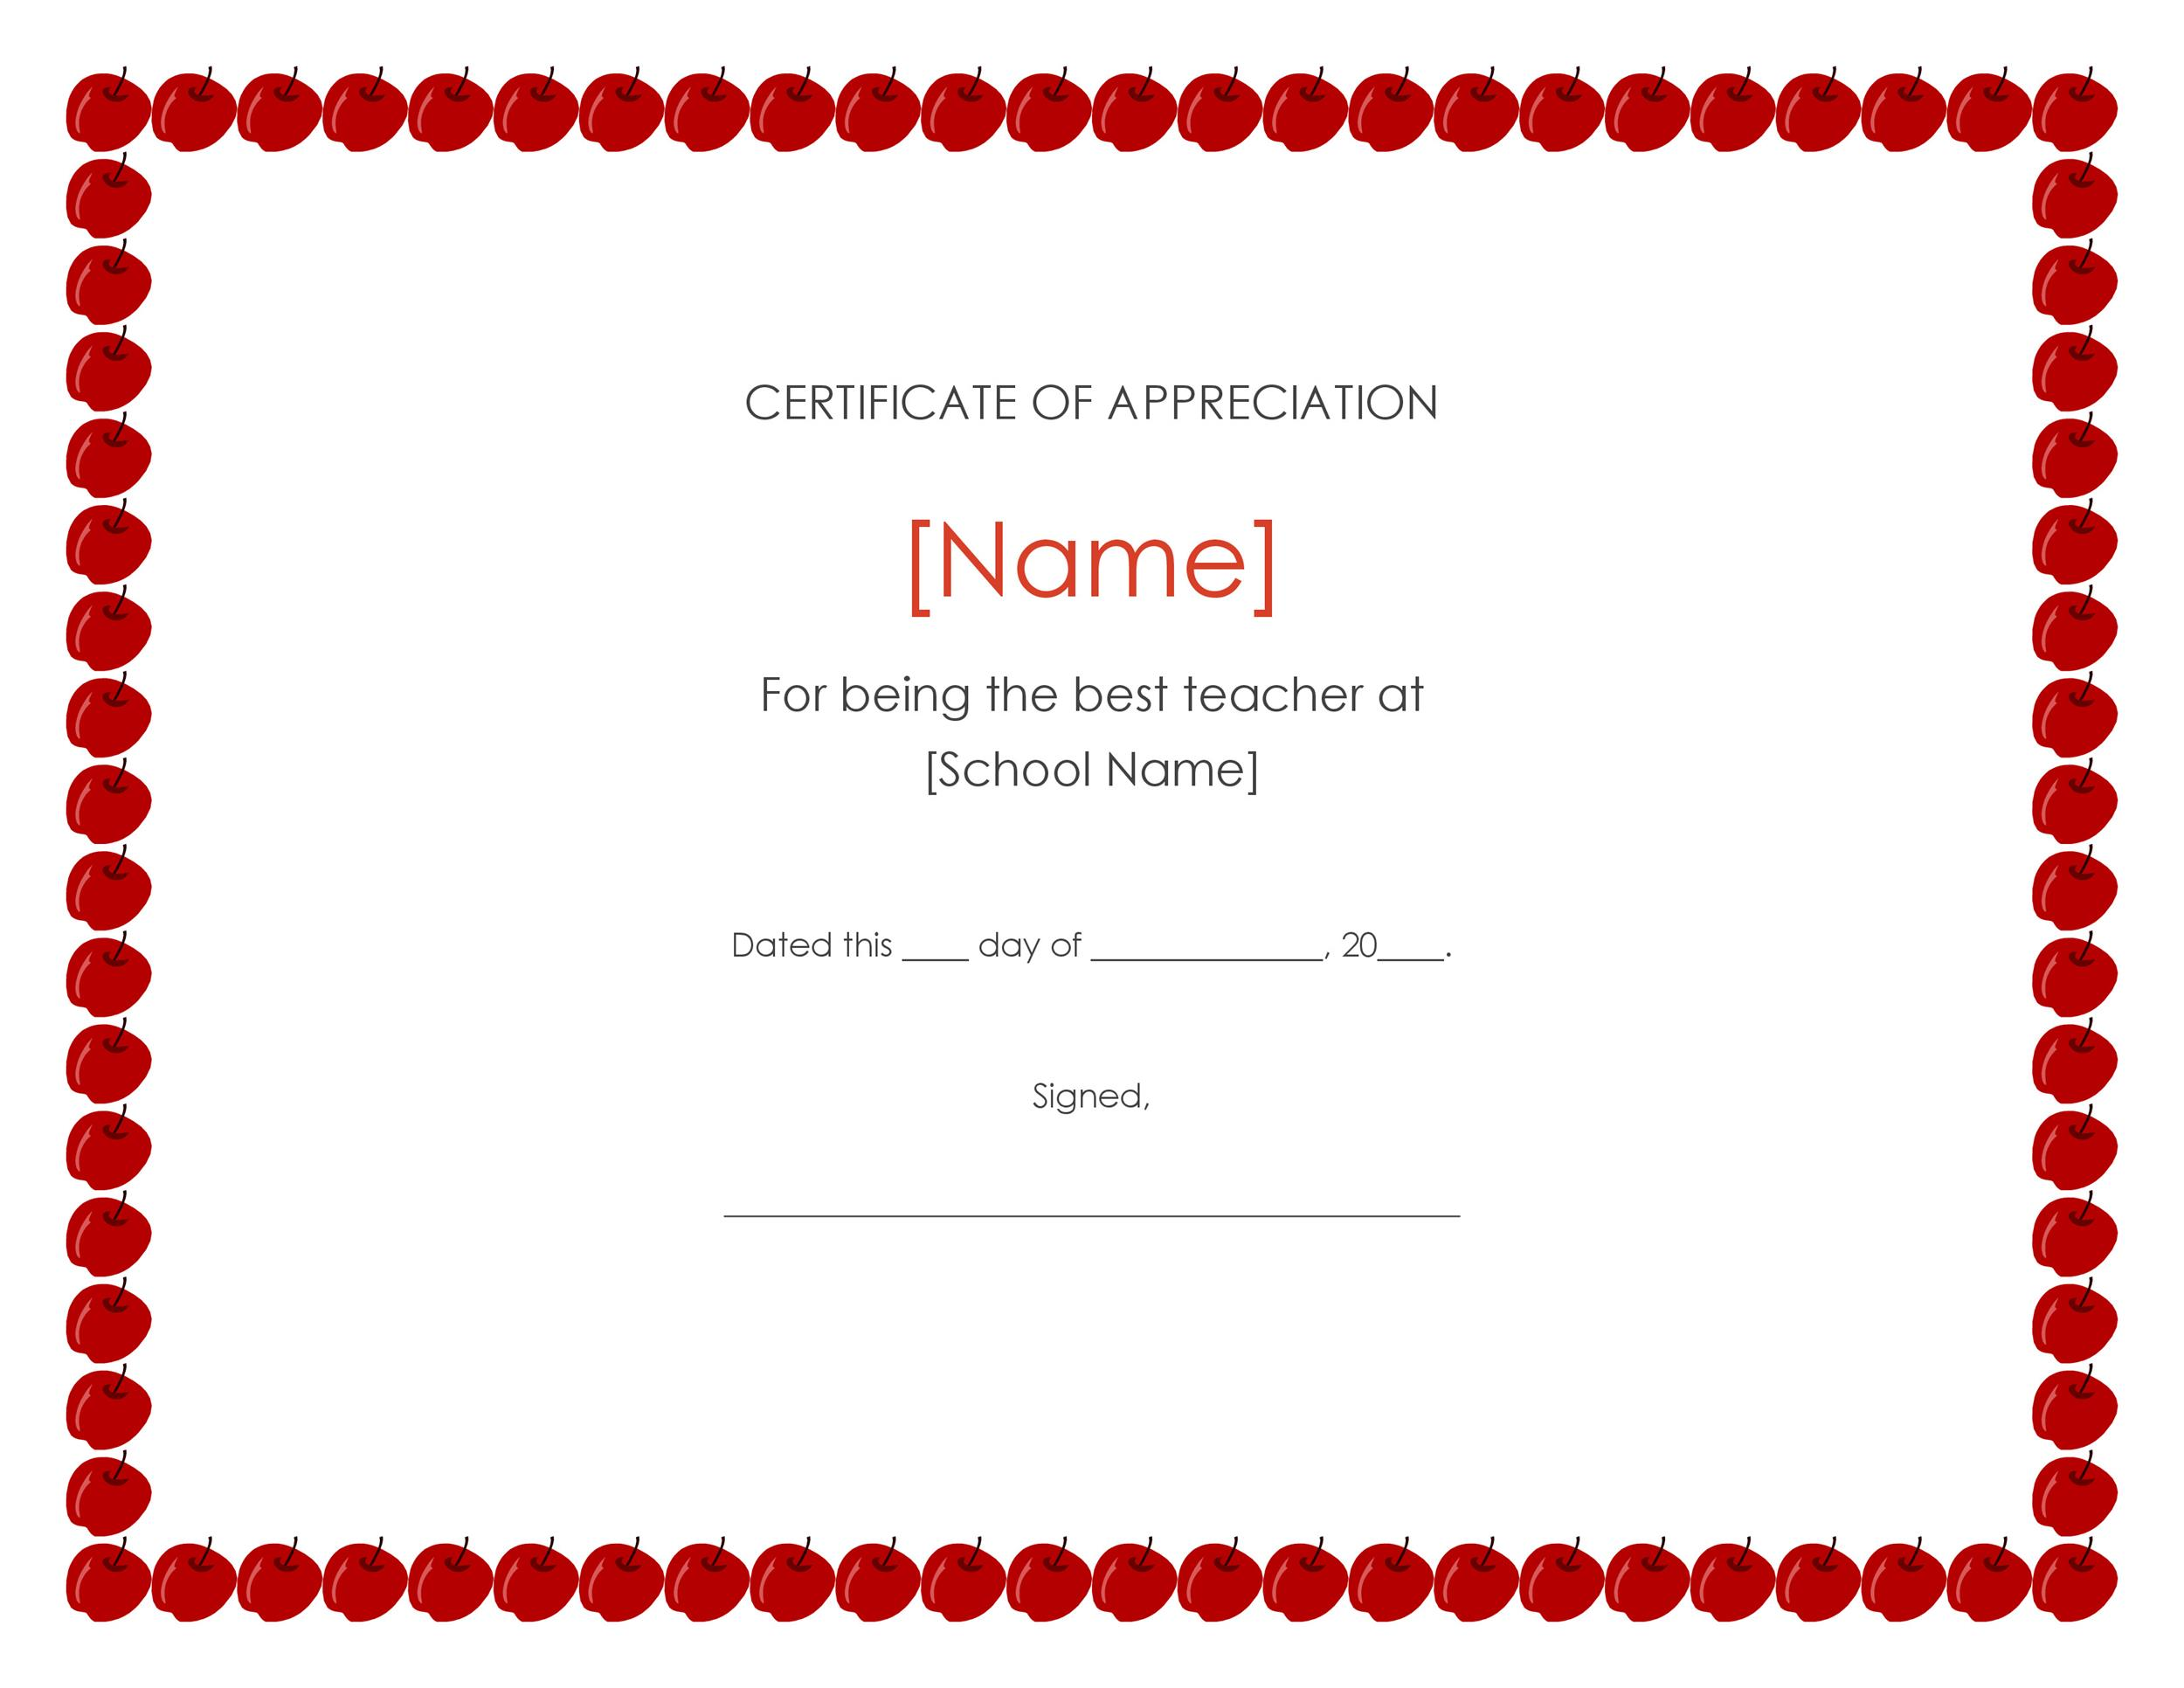 30 free certificate of appreciation templates and letters printable certificate of appreciation 09 yadclub Gallery